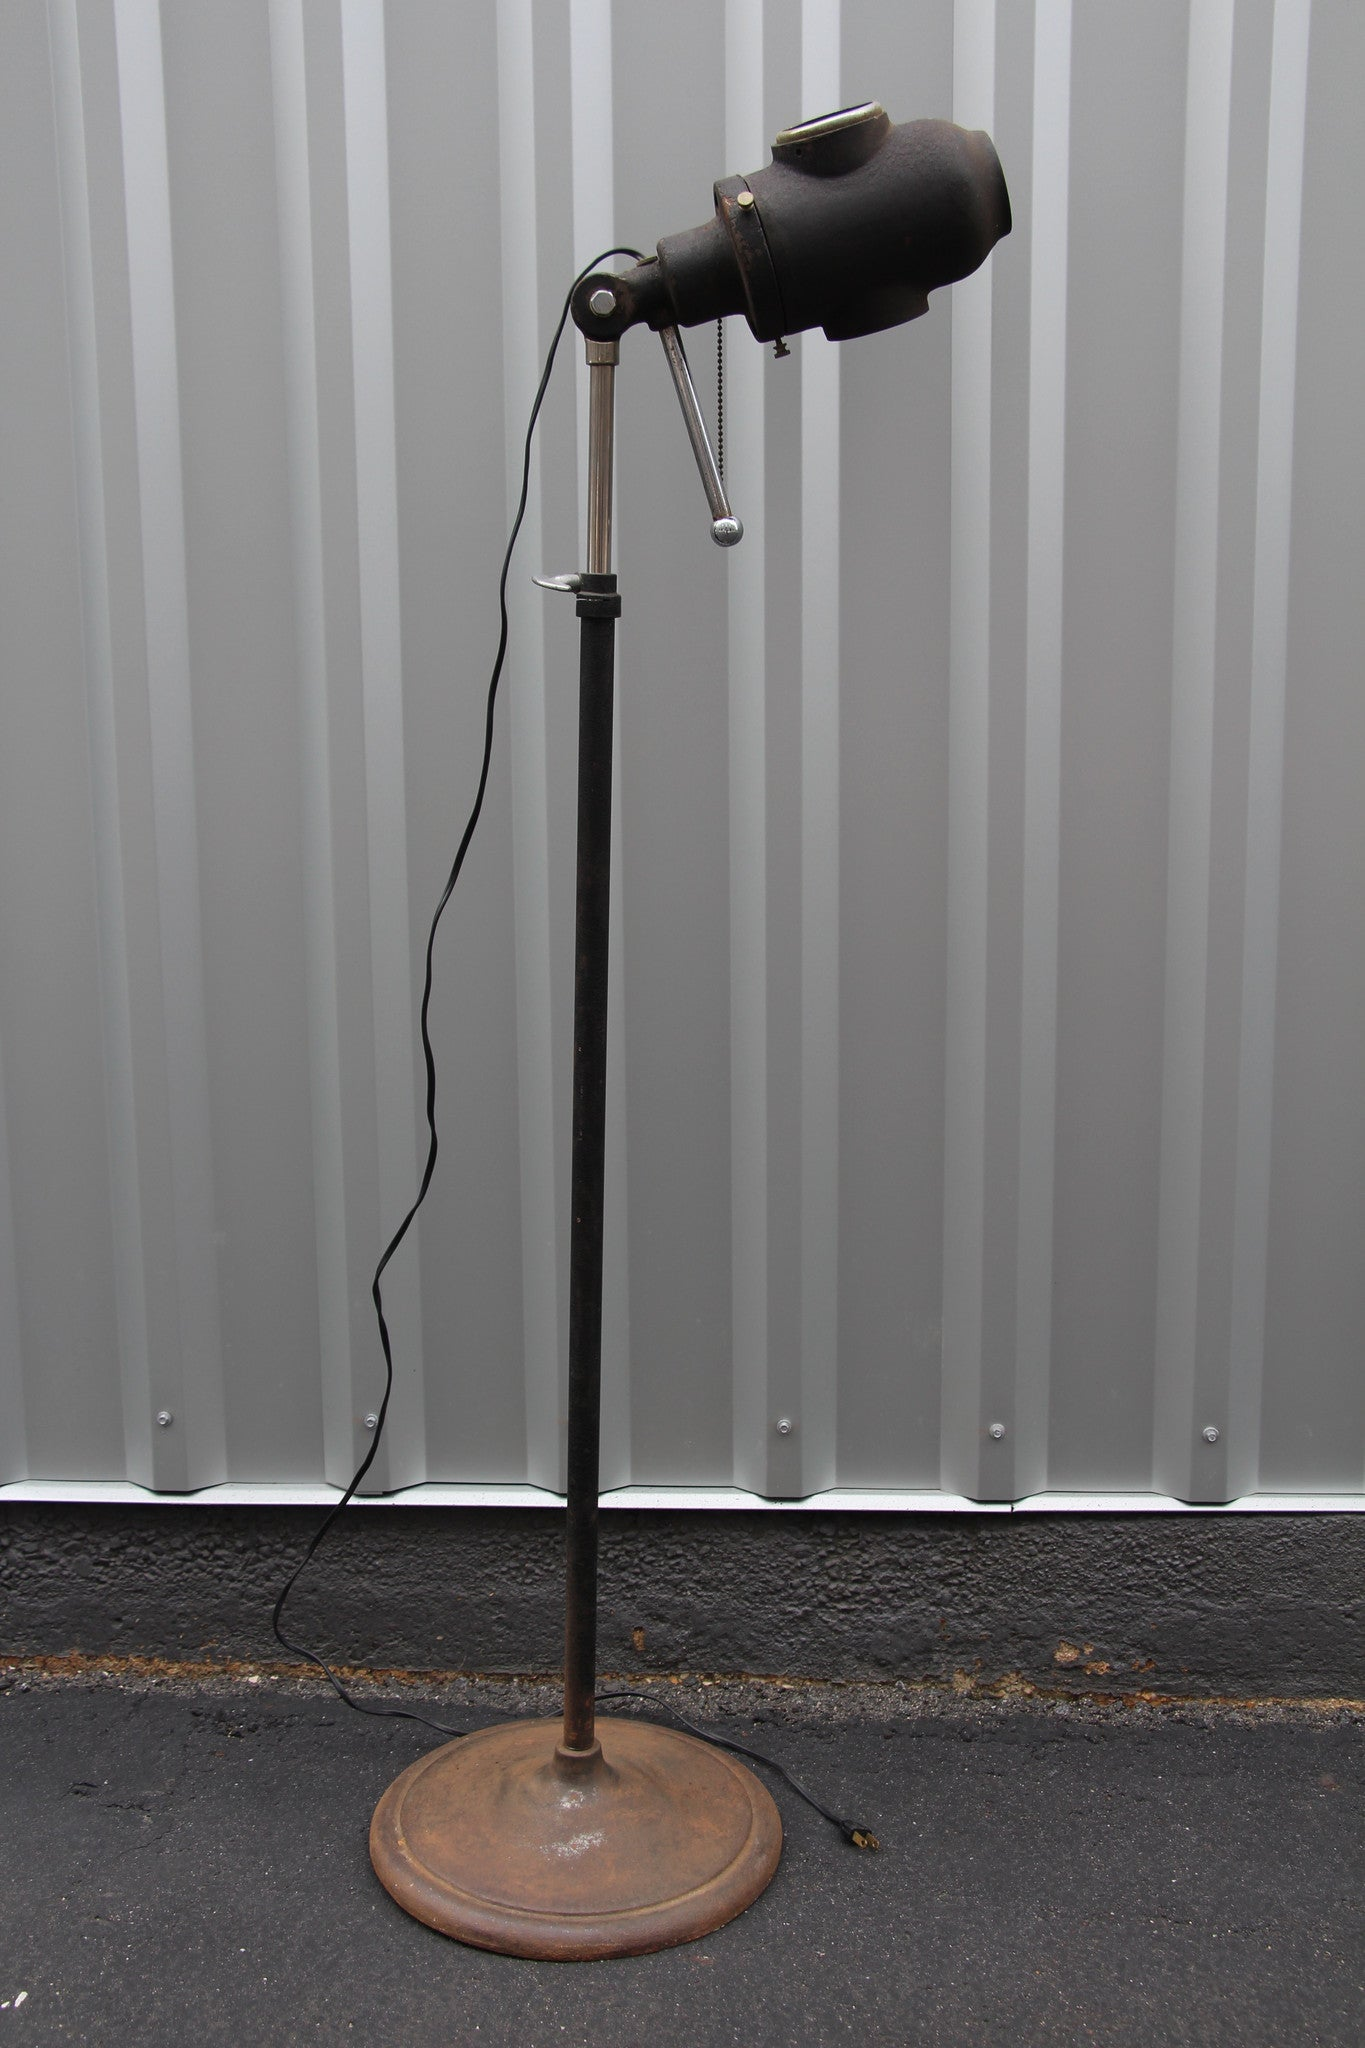 Vintage Industrial Stage Floor Lamp - Barefoot Dwelling